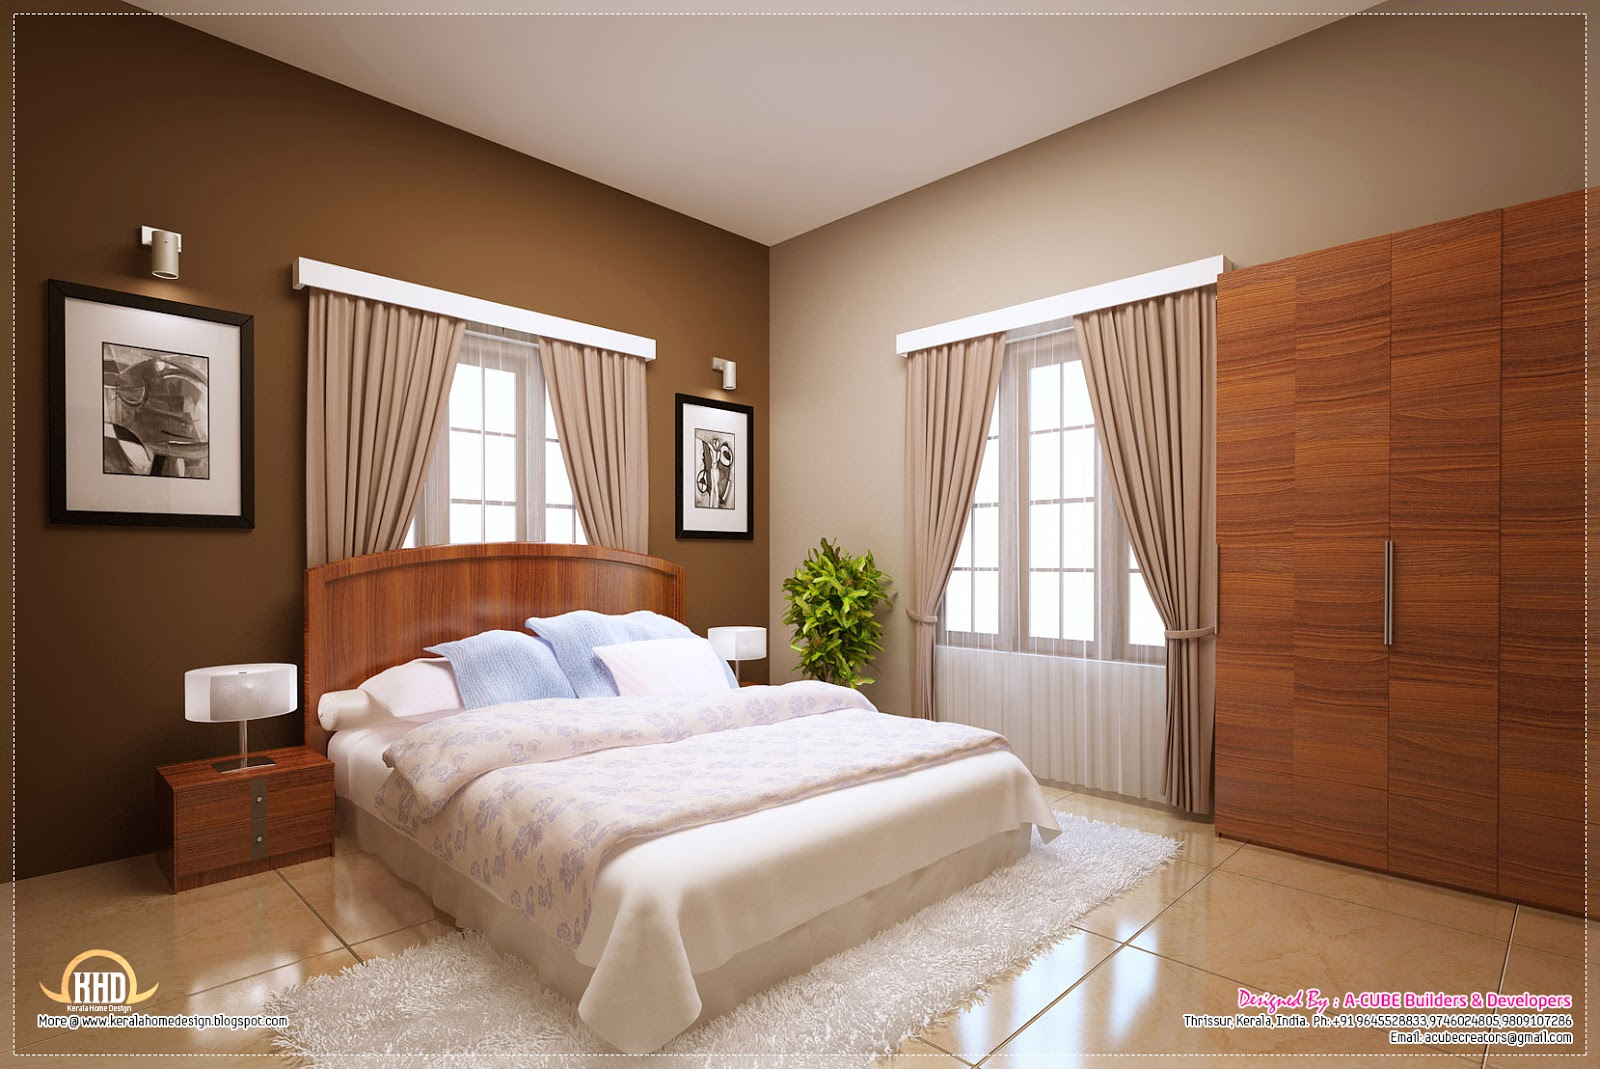 Awesome interior decoration ideas house design plans for Best bedroom ideas 2014